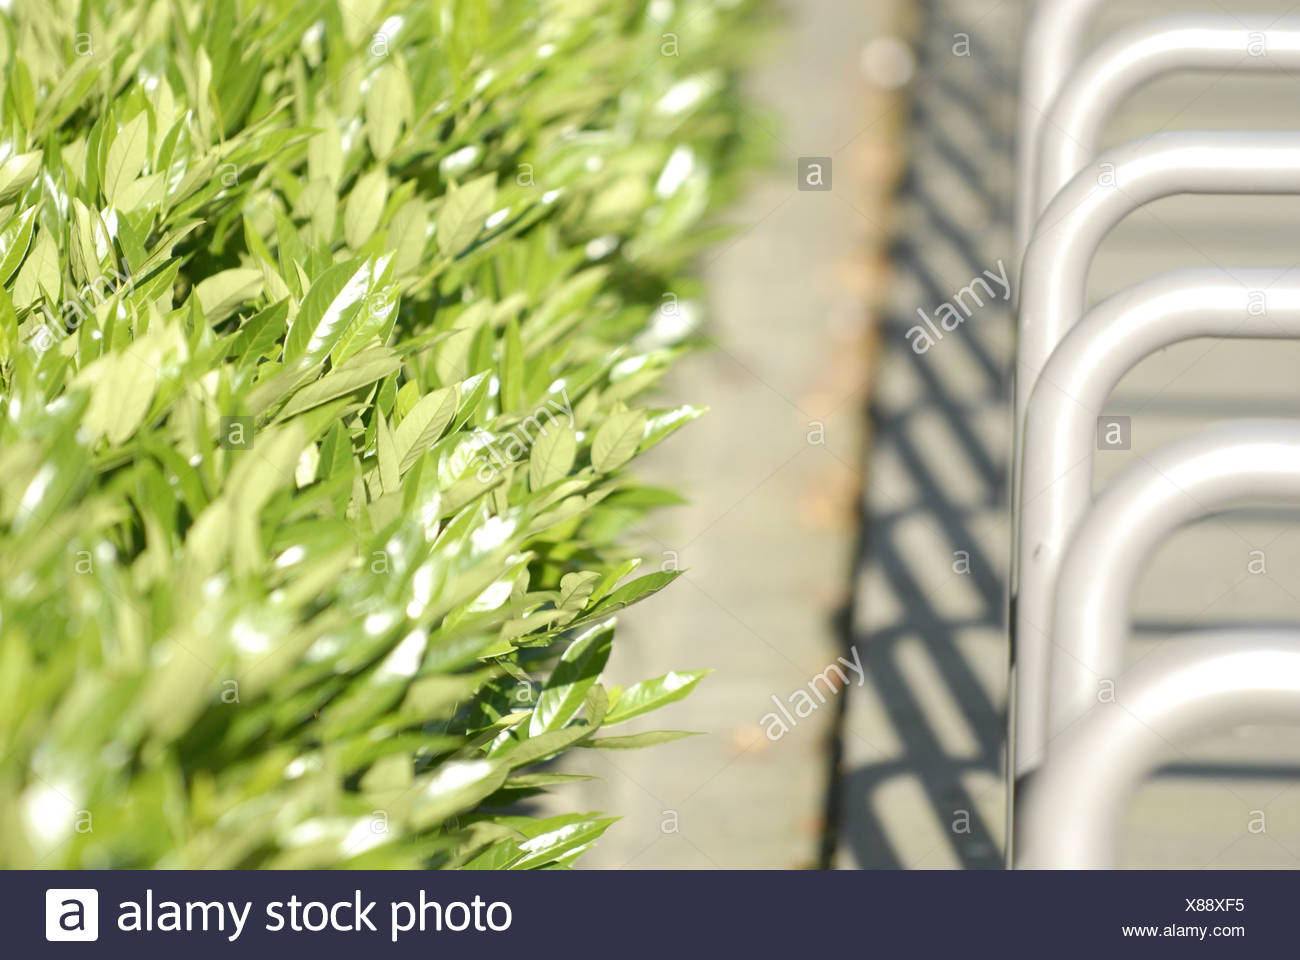 bicycle stand with Cotoneaster hedge - Stock Image